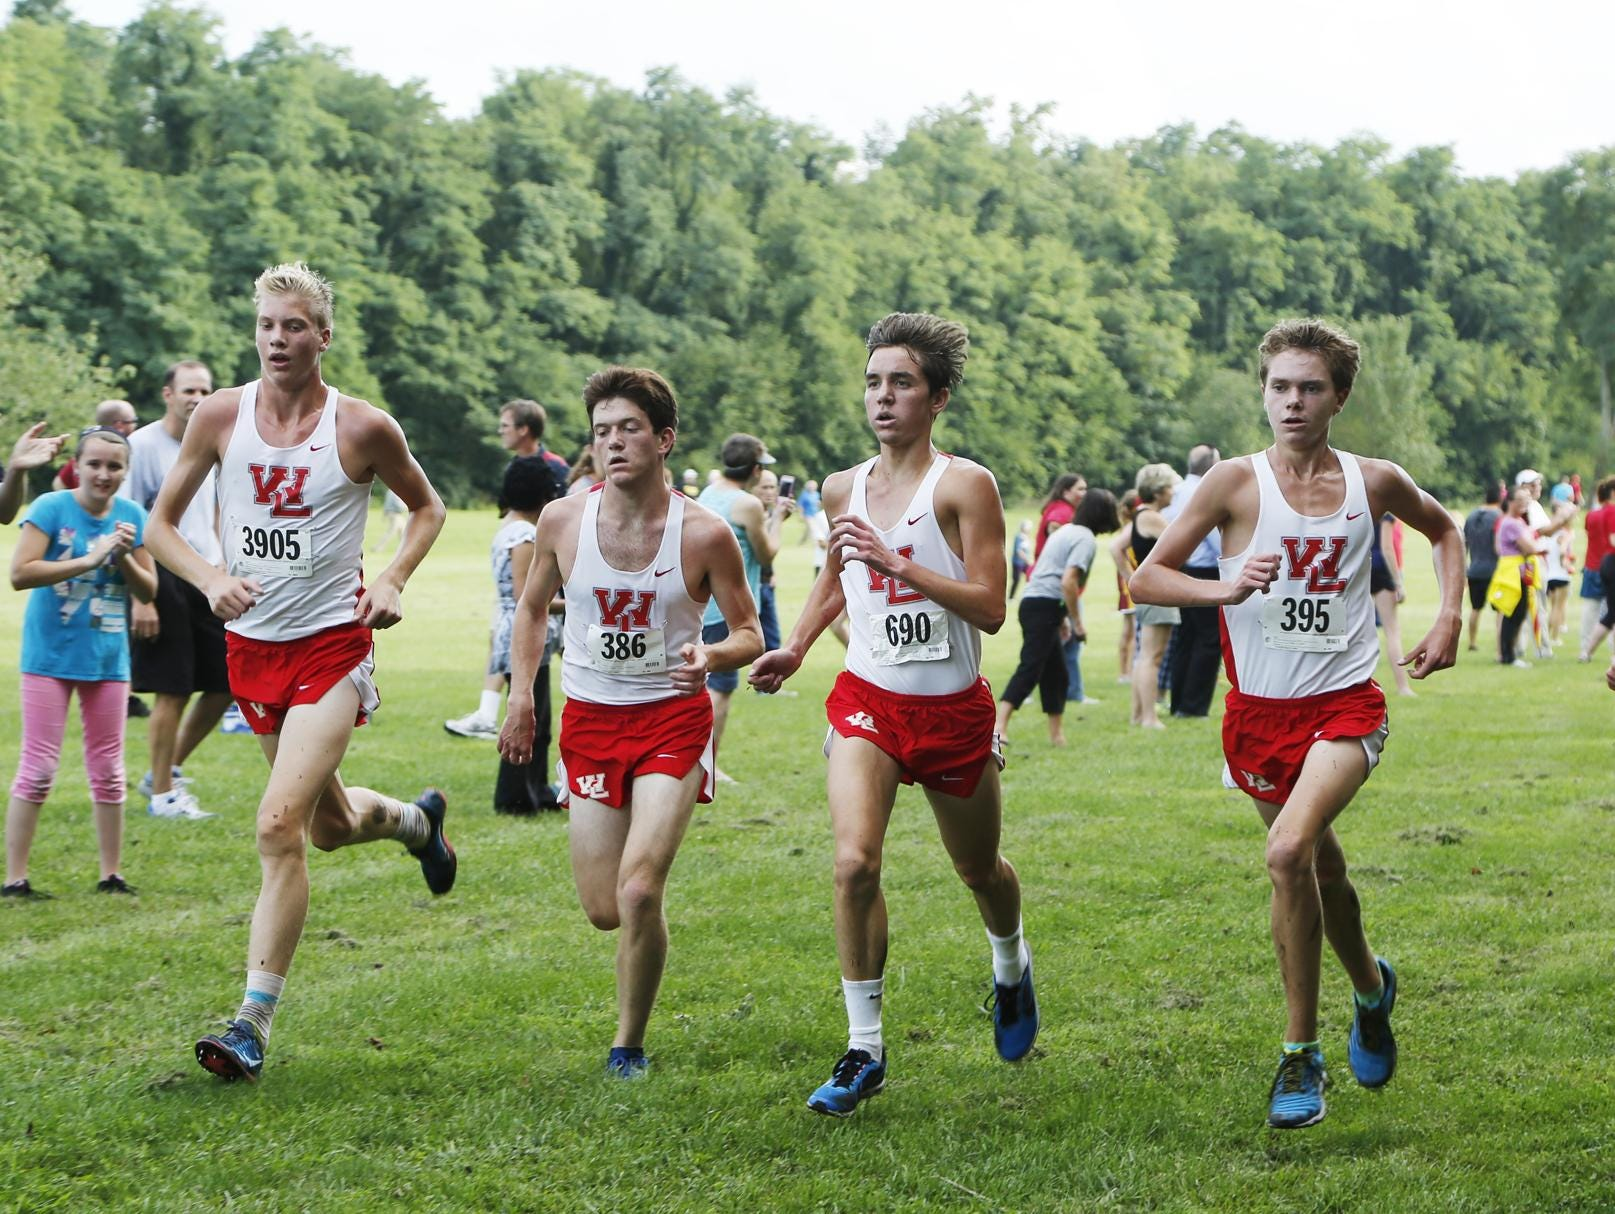 West Lafayette's Cooper Williams, from left, Jake Cohen, Dominic Patacsil, Evan Johnson and Dylan Williams come to the finish line together in the boys race of the City/County cross country meet Tuesday, September 2, 2014, at the Tippecanoe Amphitheatre.